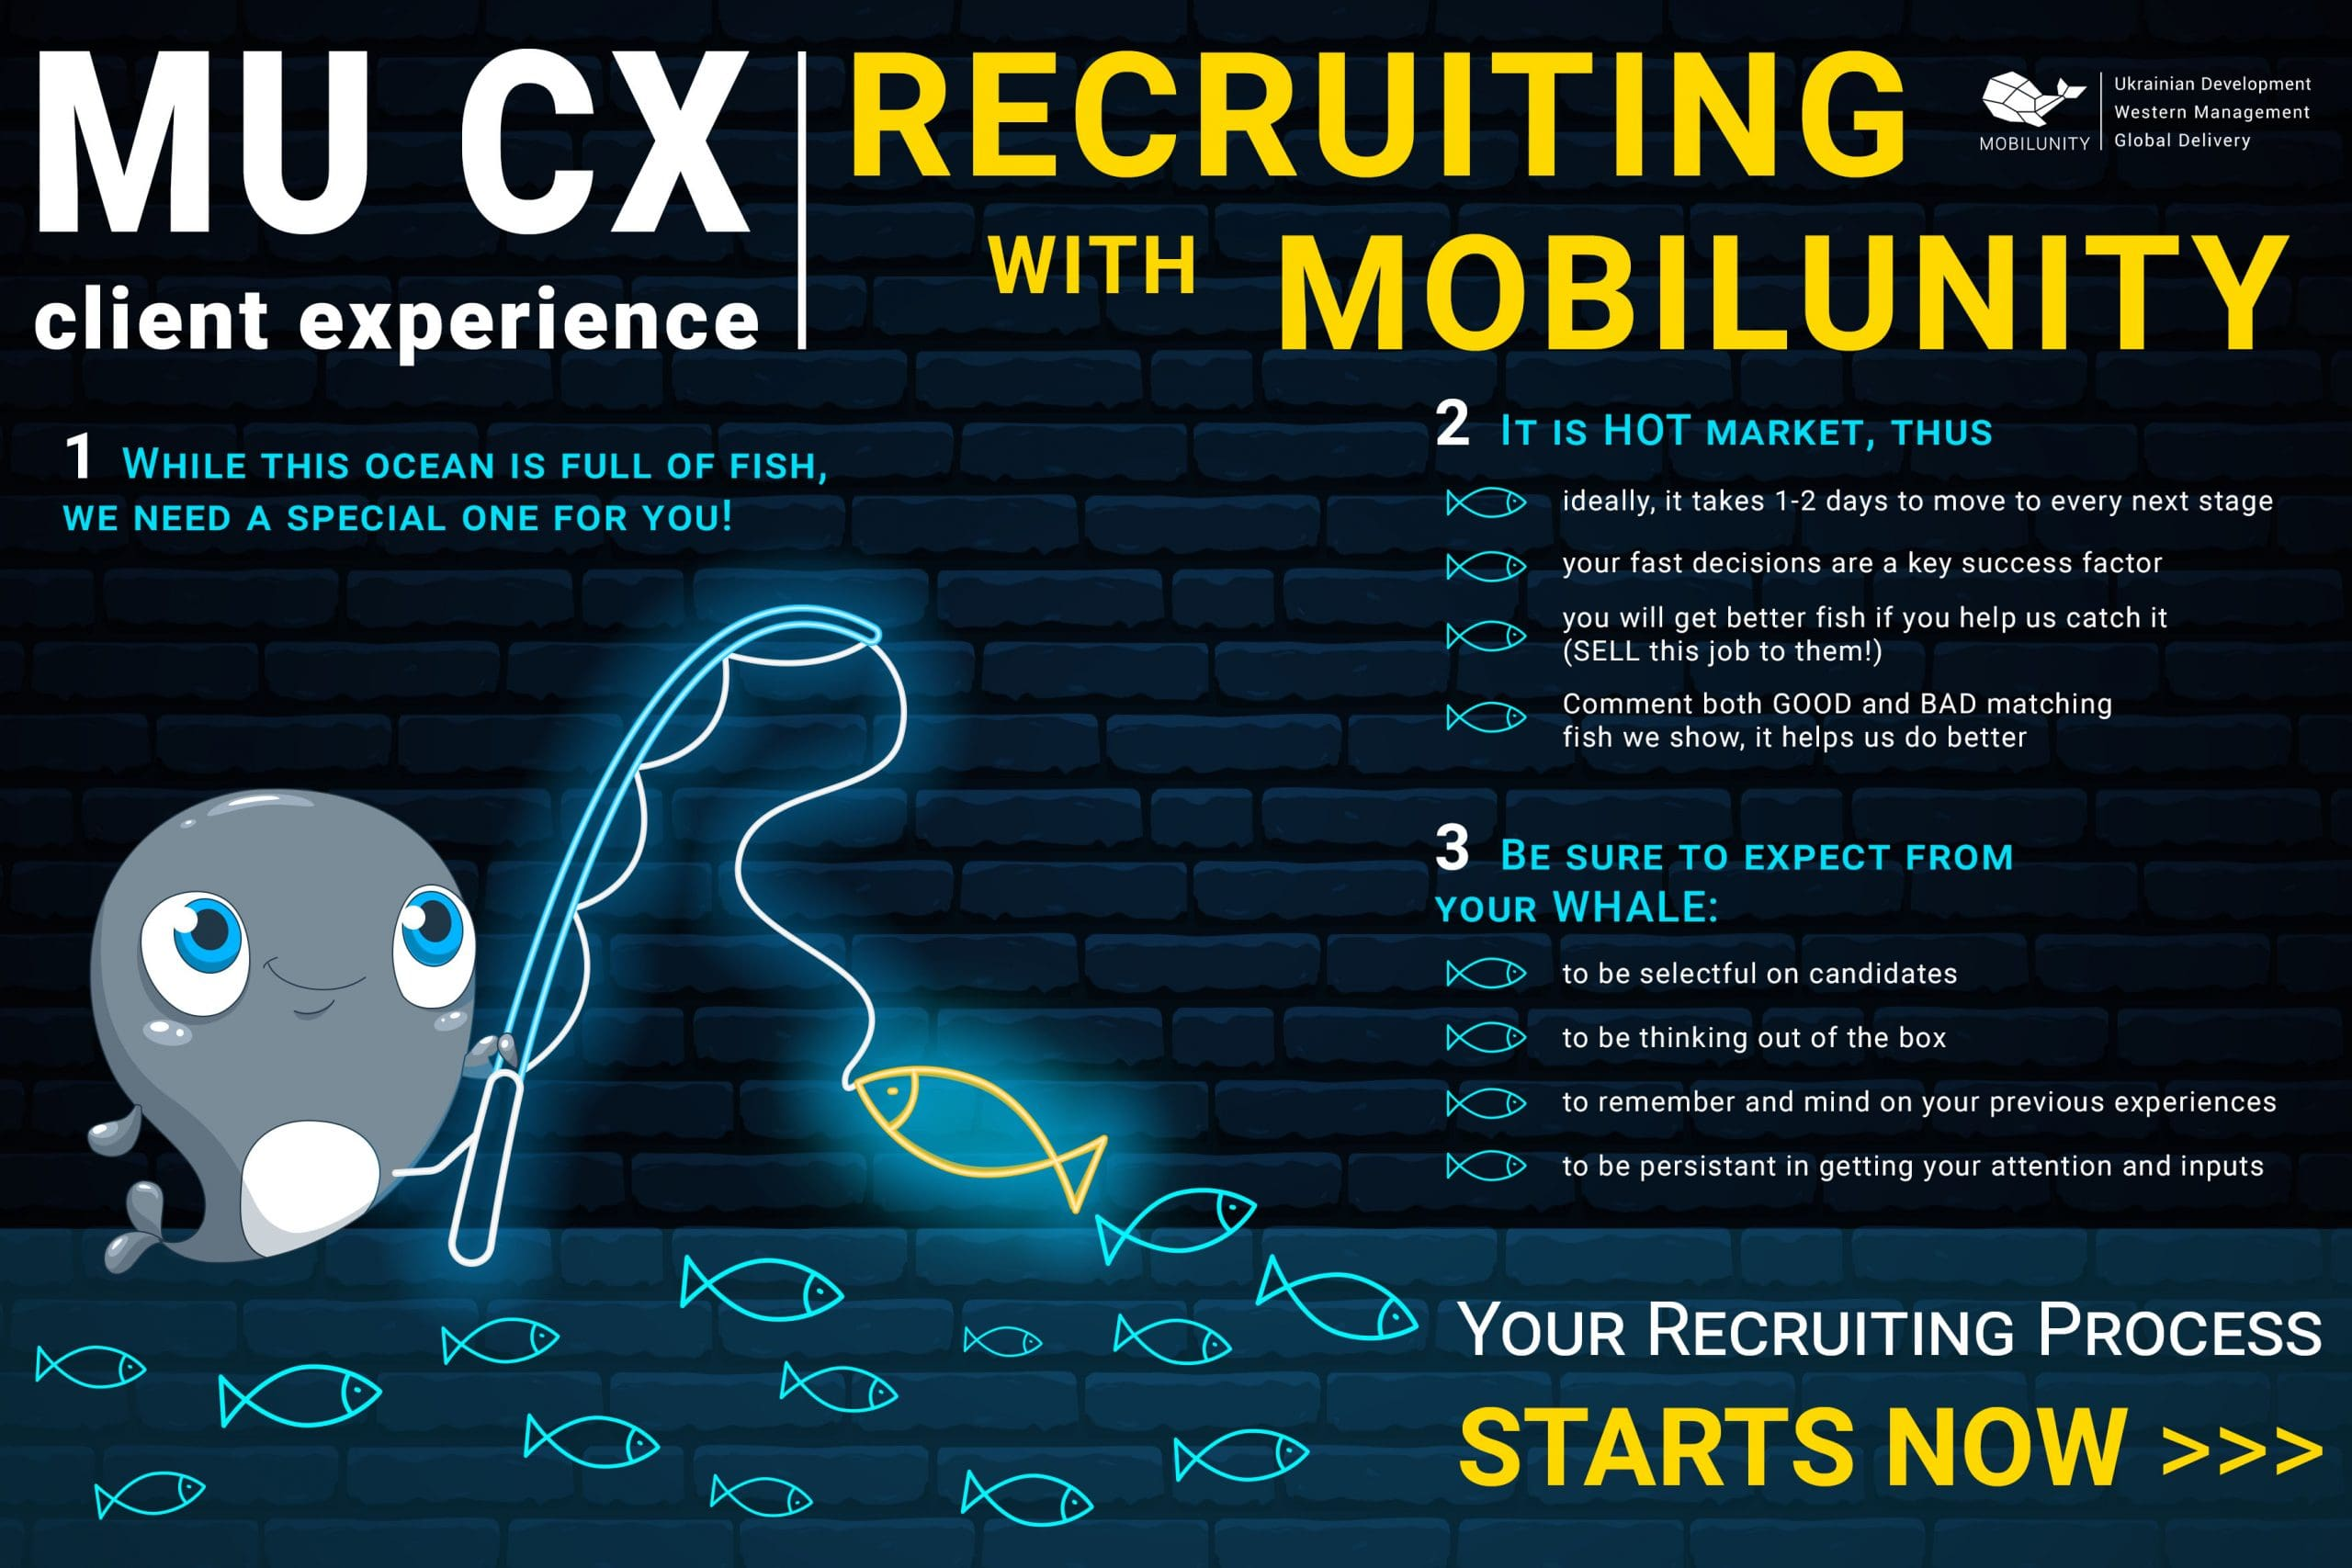 Client and Candidate Experiences in Mobilunity's Recruiting Approach